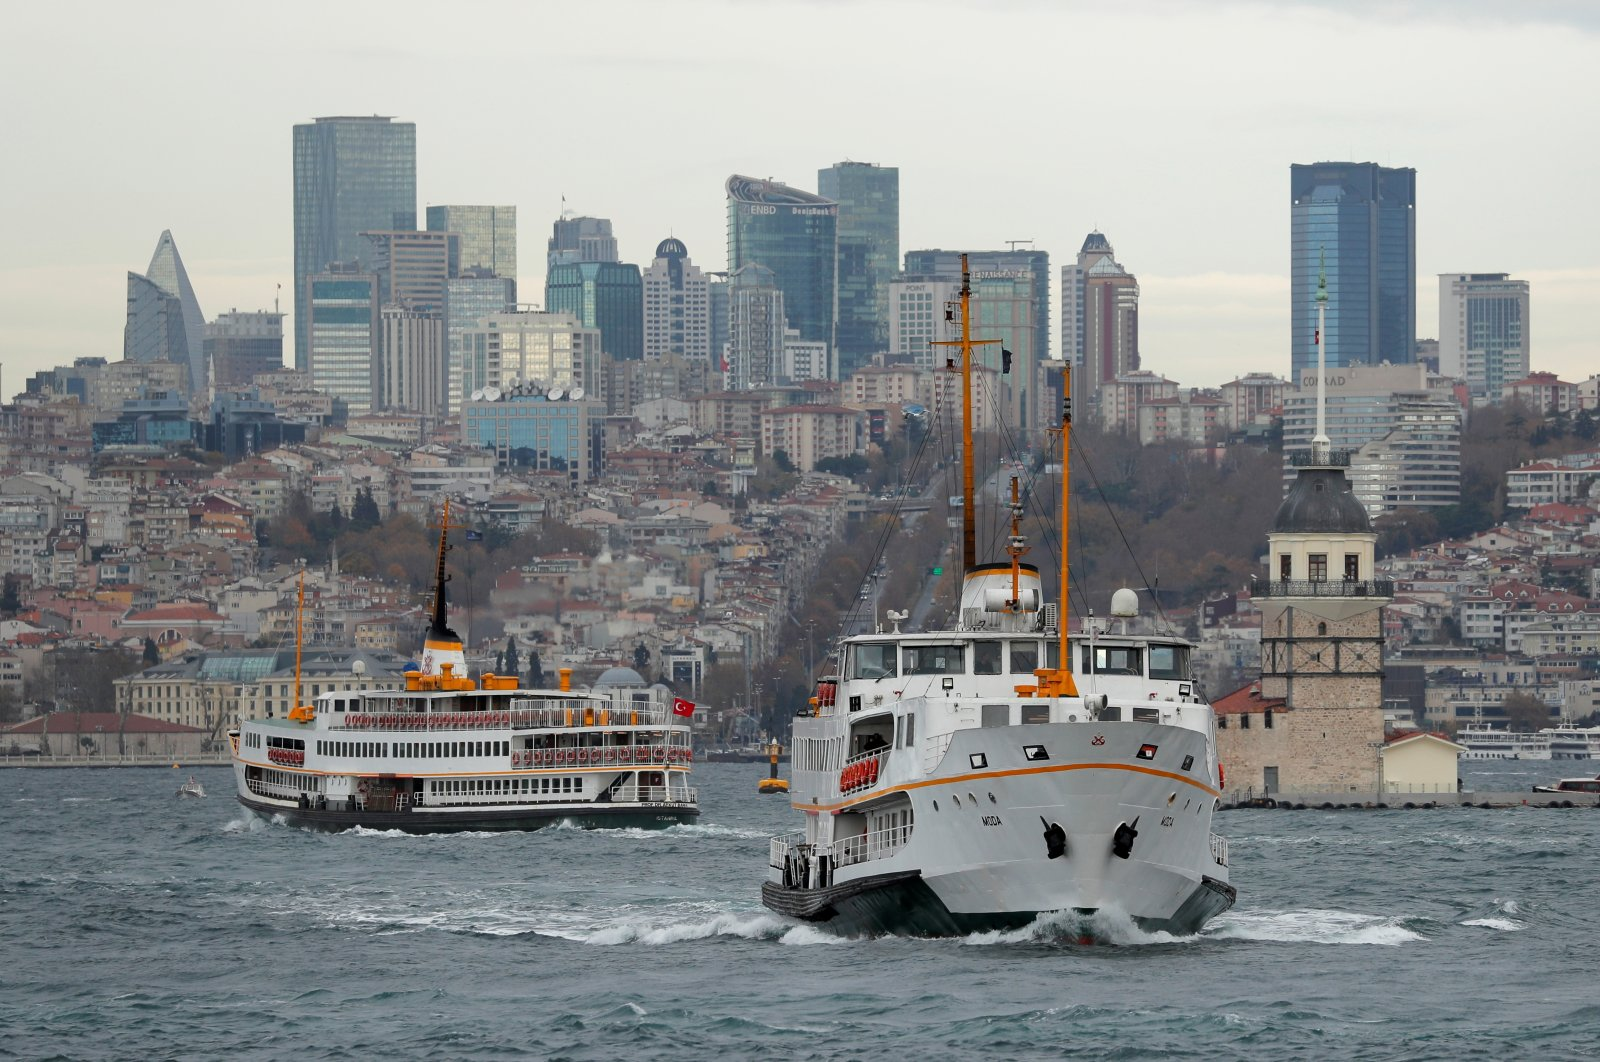 Ferries, with the city's skyscrapers in the background, sail in the Bosphorus in Istanbul, Turkey, Dec. 11, 2020. (Reuters Photo)